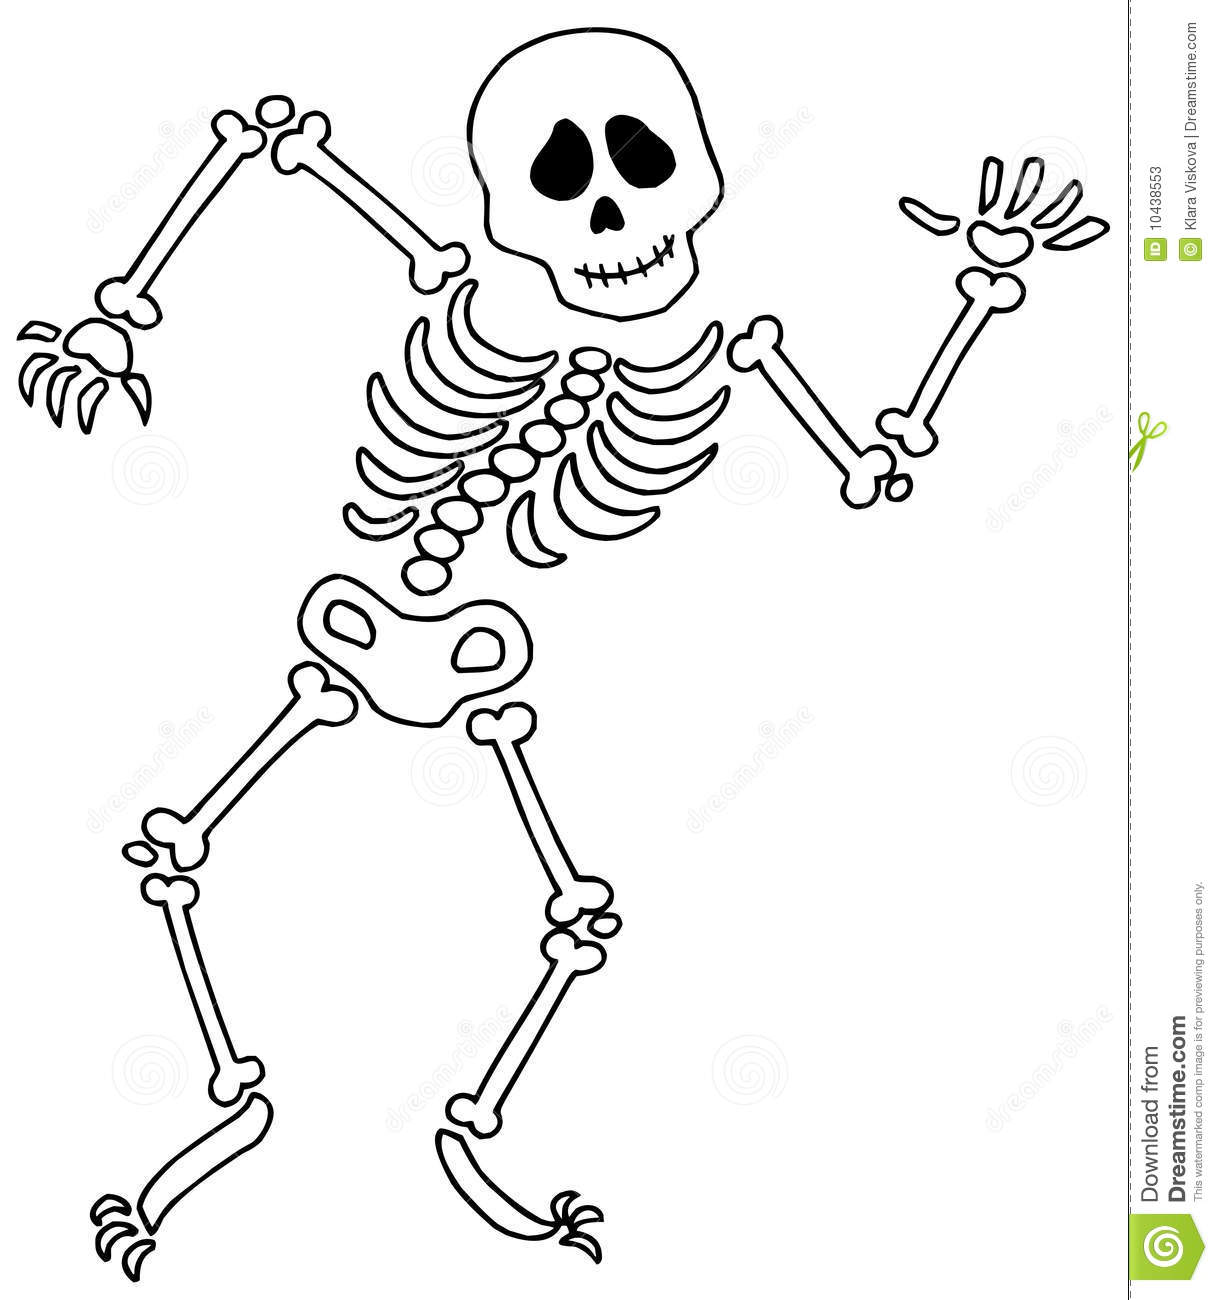 Stock Photos Dancing Skeleton Image10438553 on scary eyes clip art free